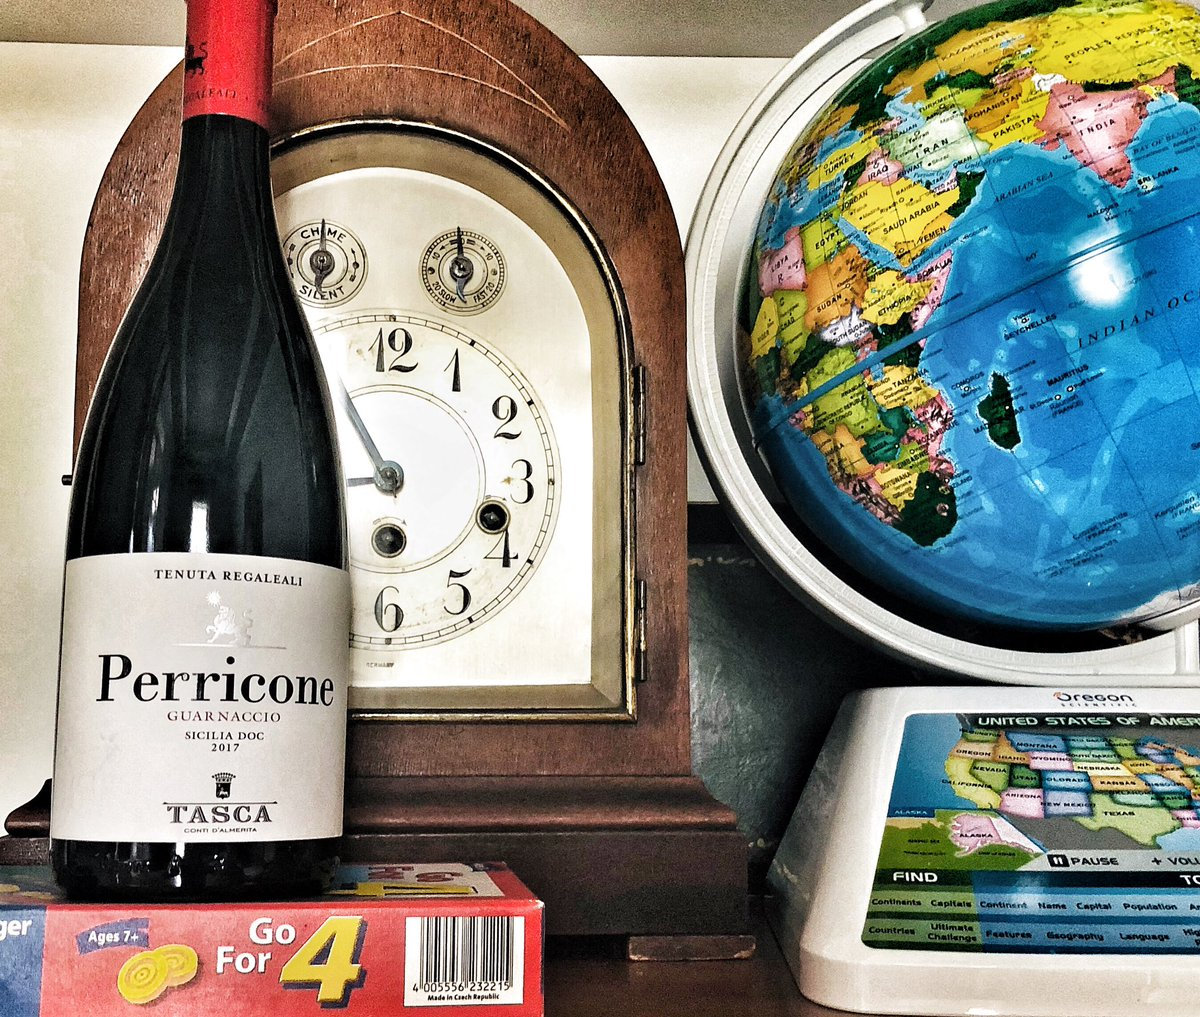 Perricone, a rare red grape variety that thrives in Sicily, has been cultivated at Tasca since 1959. While the grape is usually in blends, this beauty is rich & wild, deep dark plum plucked perfectly ripe, black cherries warm from the sun, with smoke, black pepper. #wine #yum. pic.twitter.com/8SKeOutreV